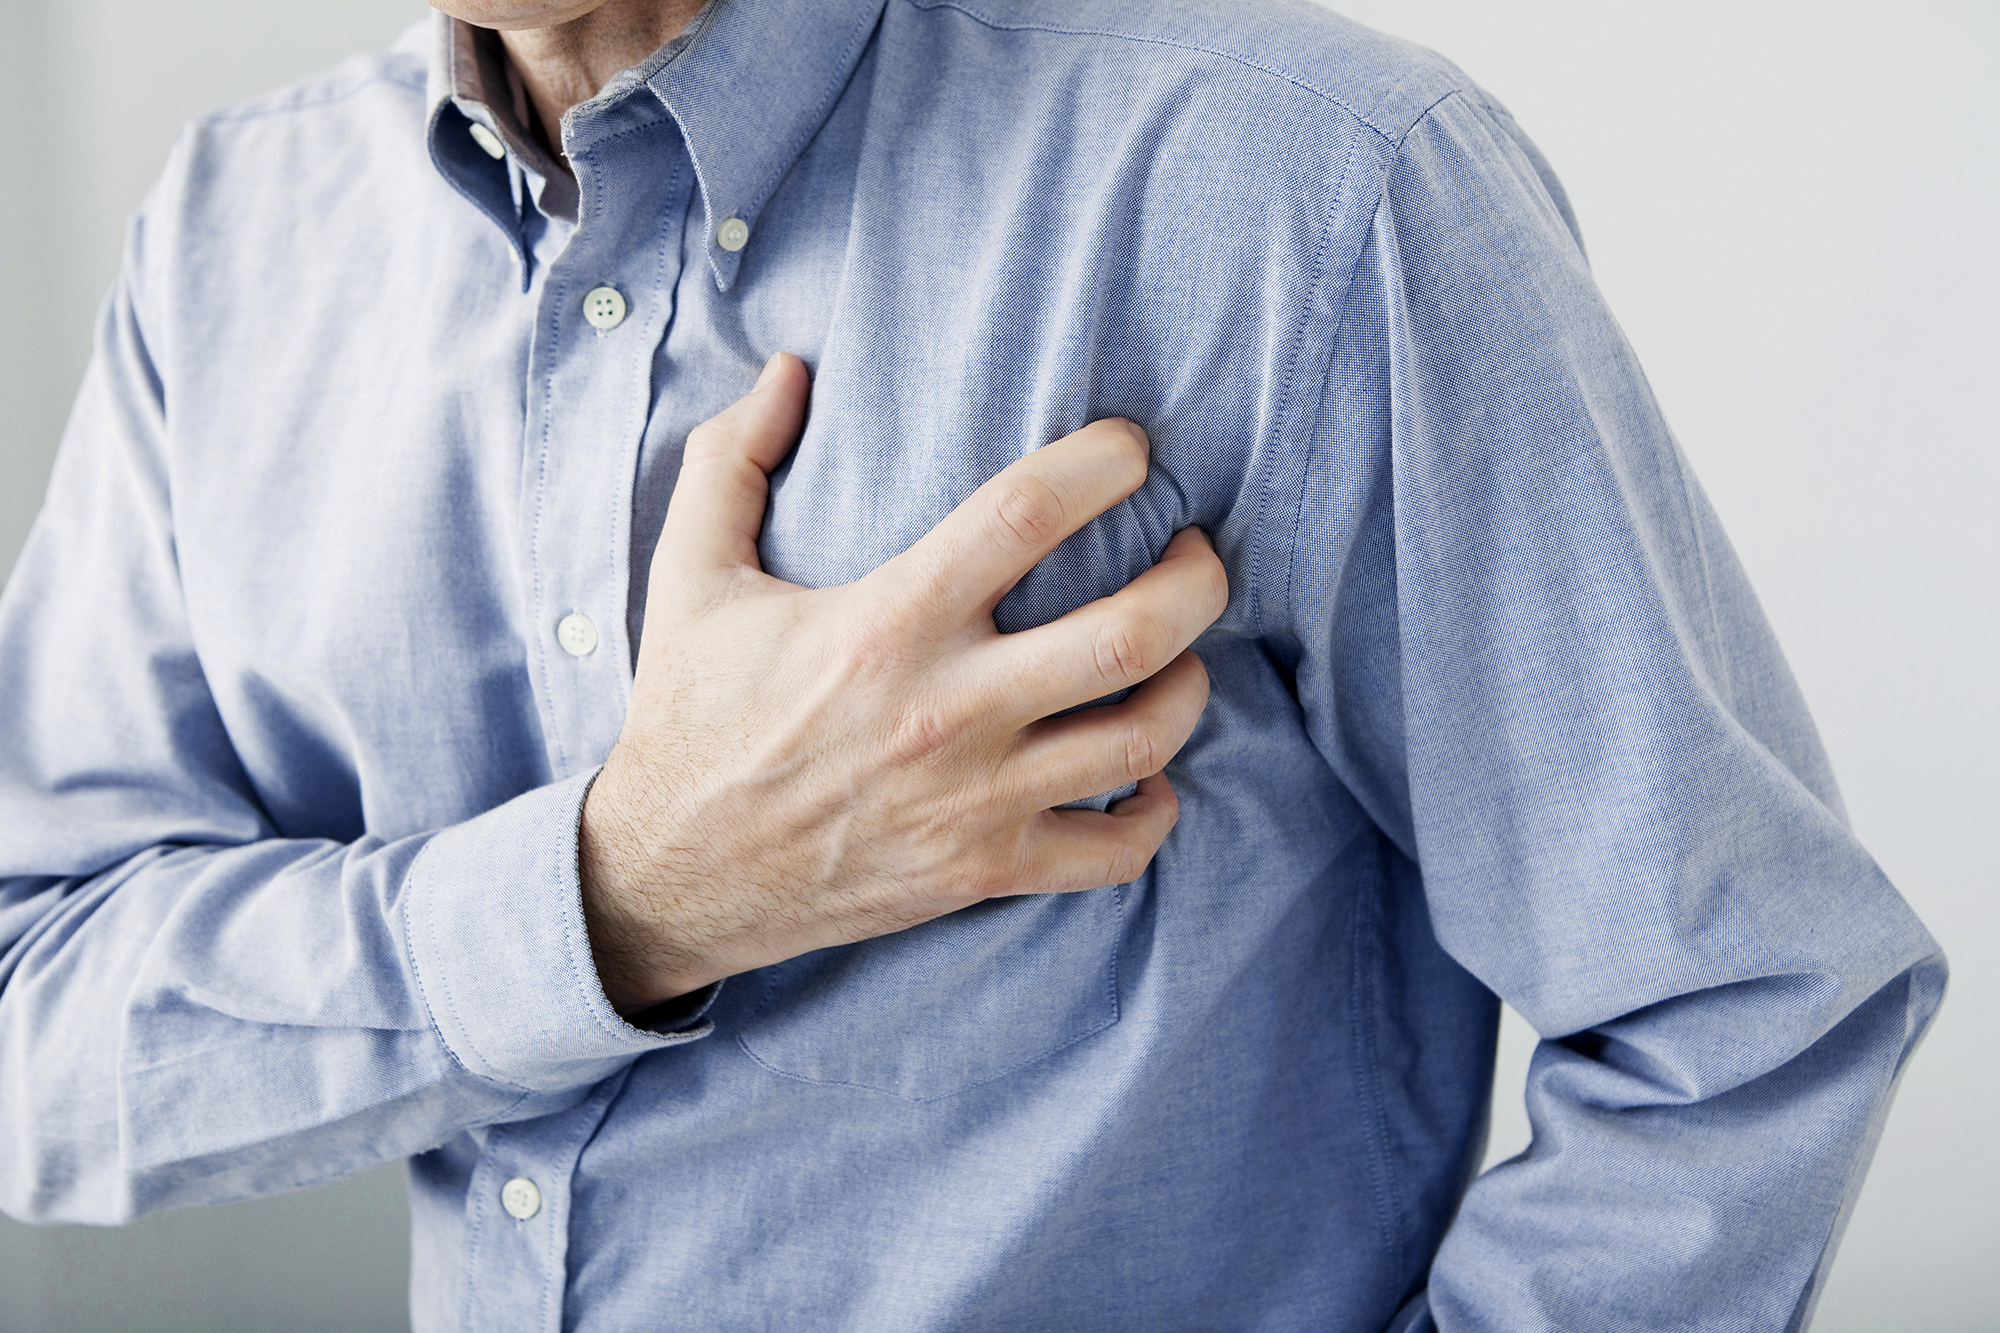 6 signs you could be at risk of a heart attack